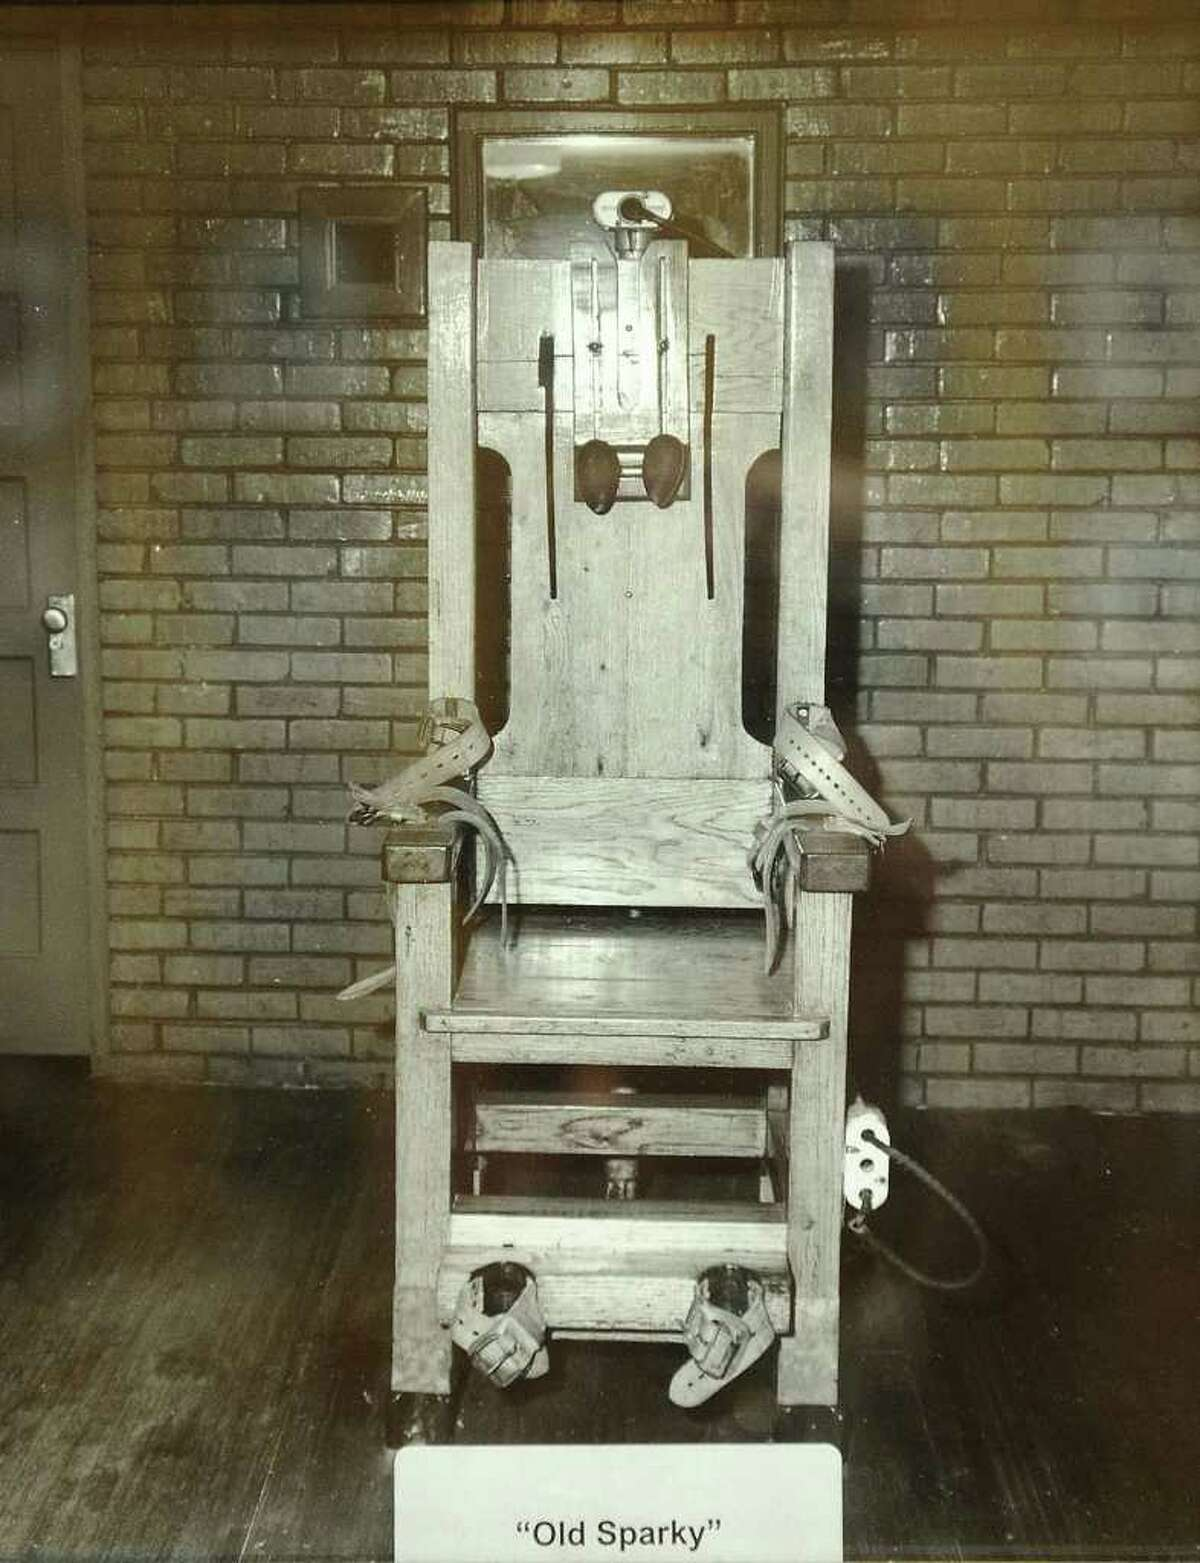 Texas executed its prisoners by hanging until 1924 when the electric chair was introduced. By 1964 lethal injection became the most humane form of capital punishment. Also, during the Civil War Texas used a firing squad four times. This picture of